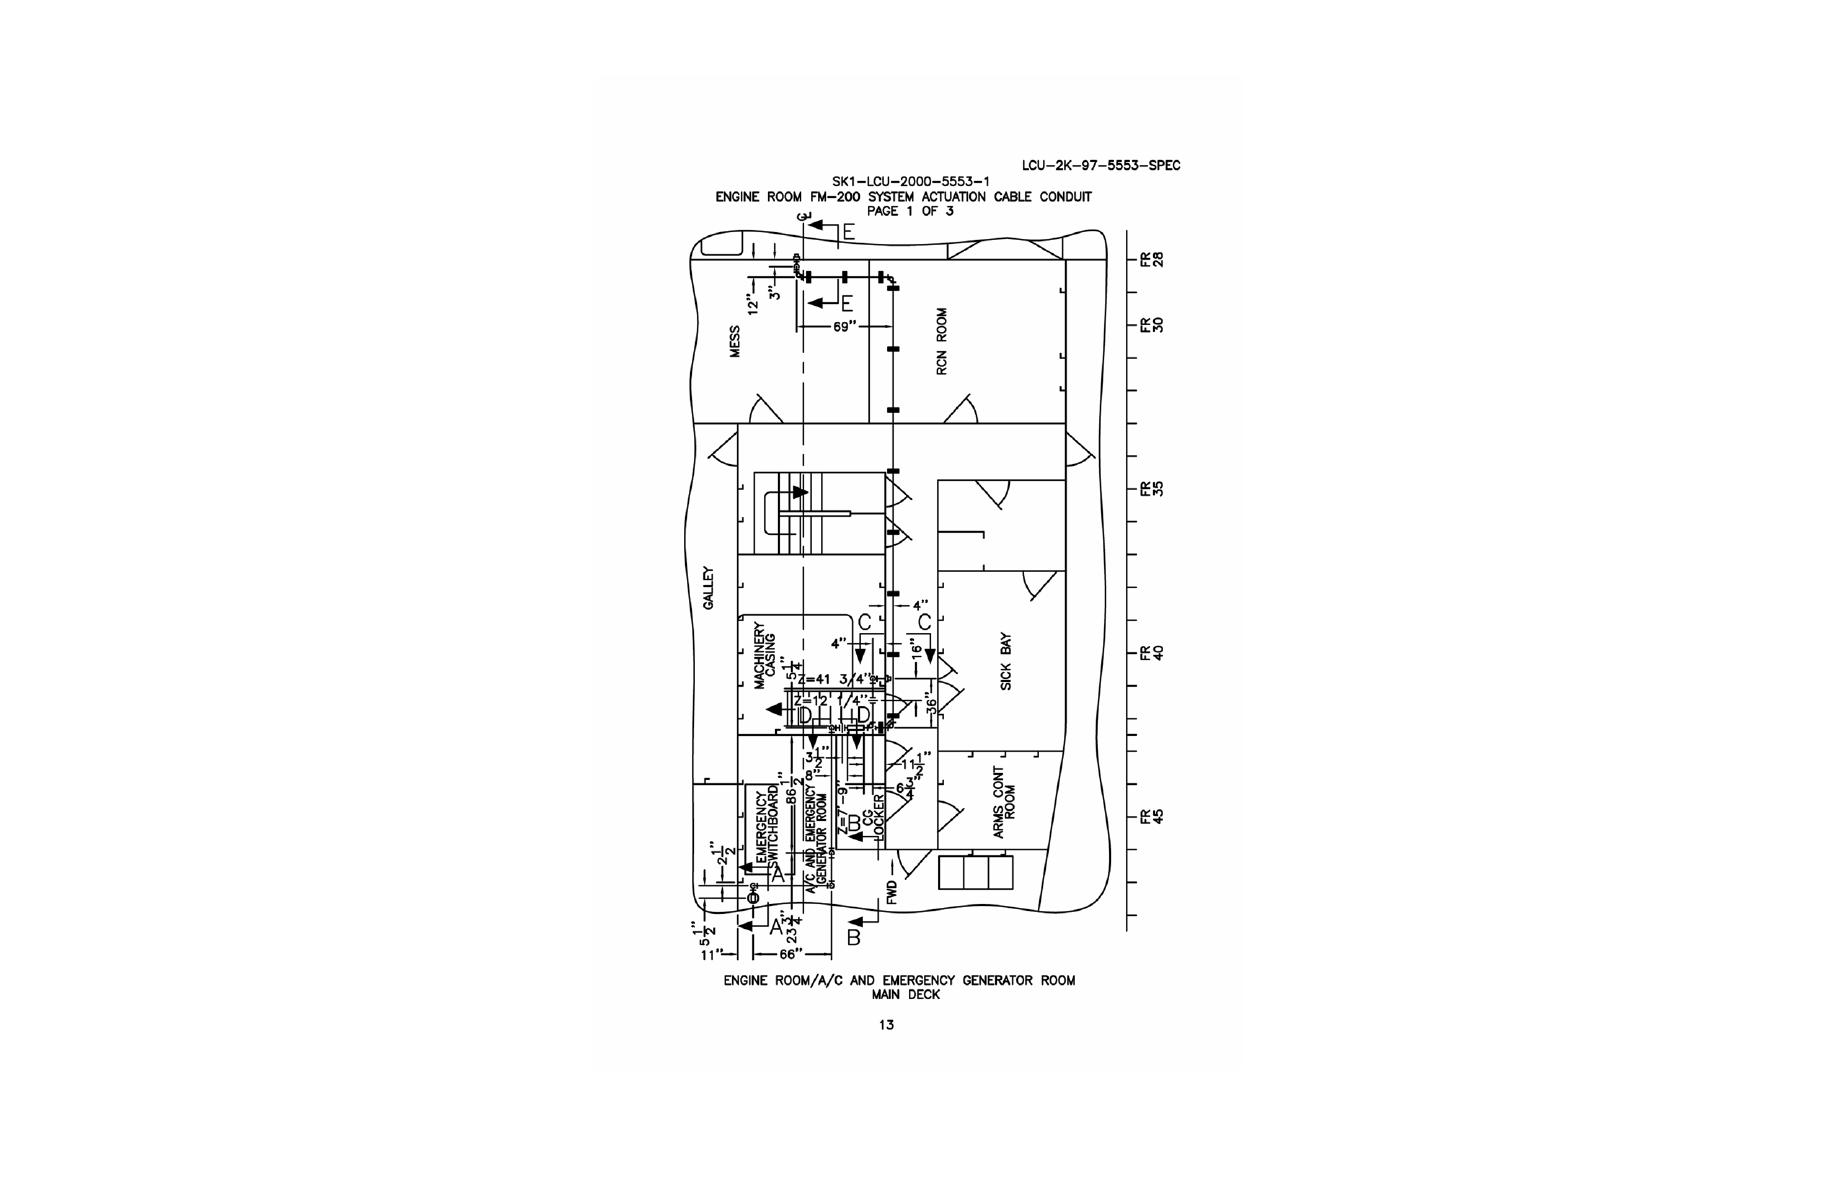 Canalizacion additionally O O O moreover Electrical Calculations Sheet Main together with Wiring Double Switch For New Ceiling Fan Electrical Diy In Wall Diagram as well The Barrie Bungalow House Plan. on electrical conduit